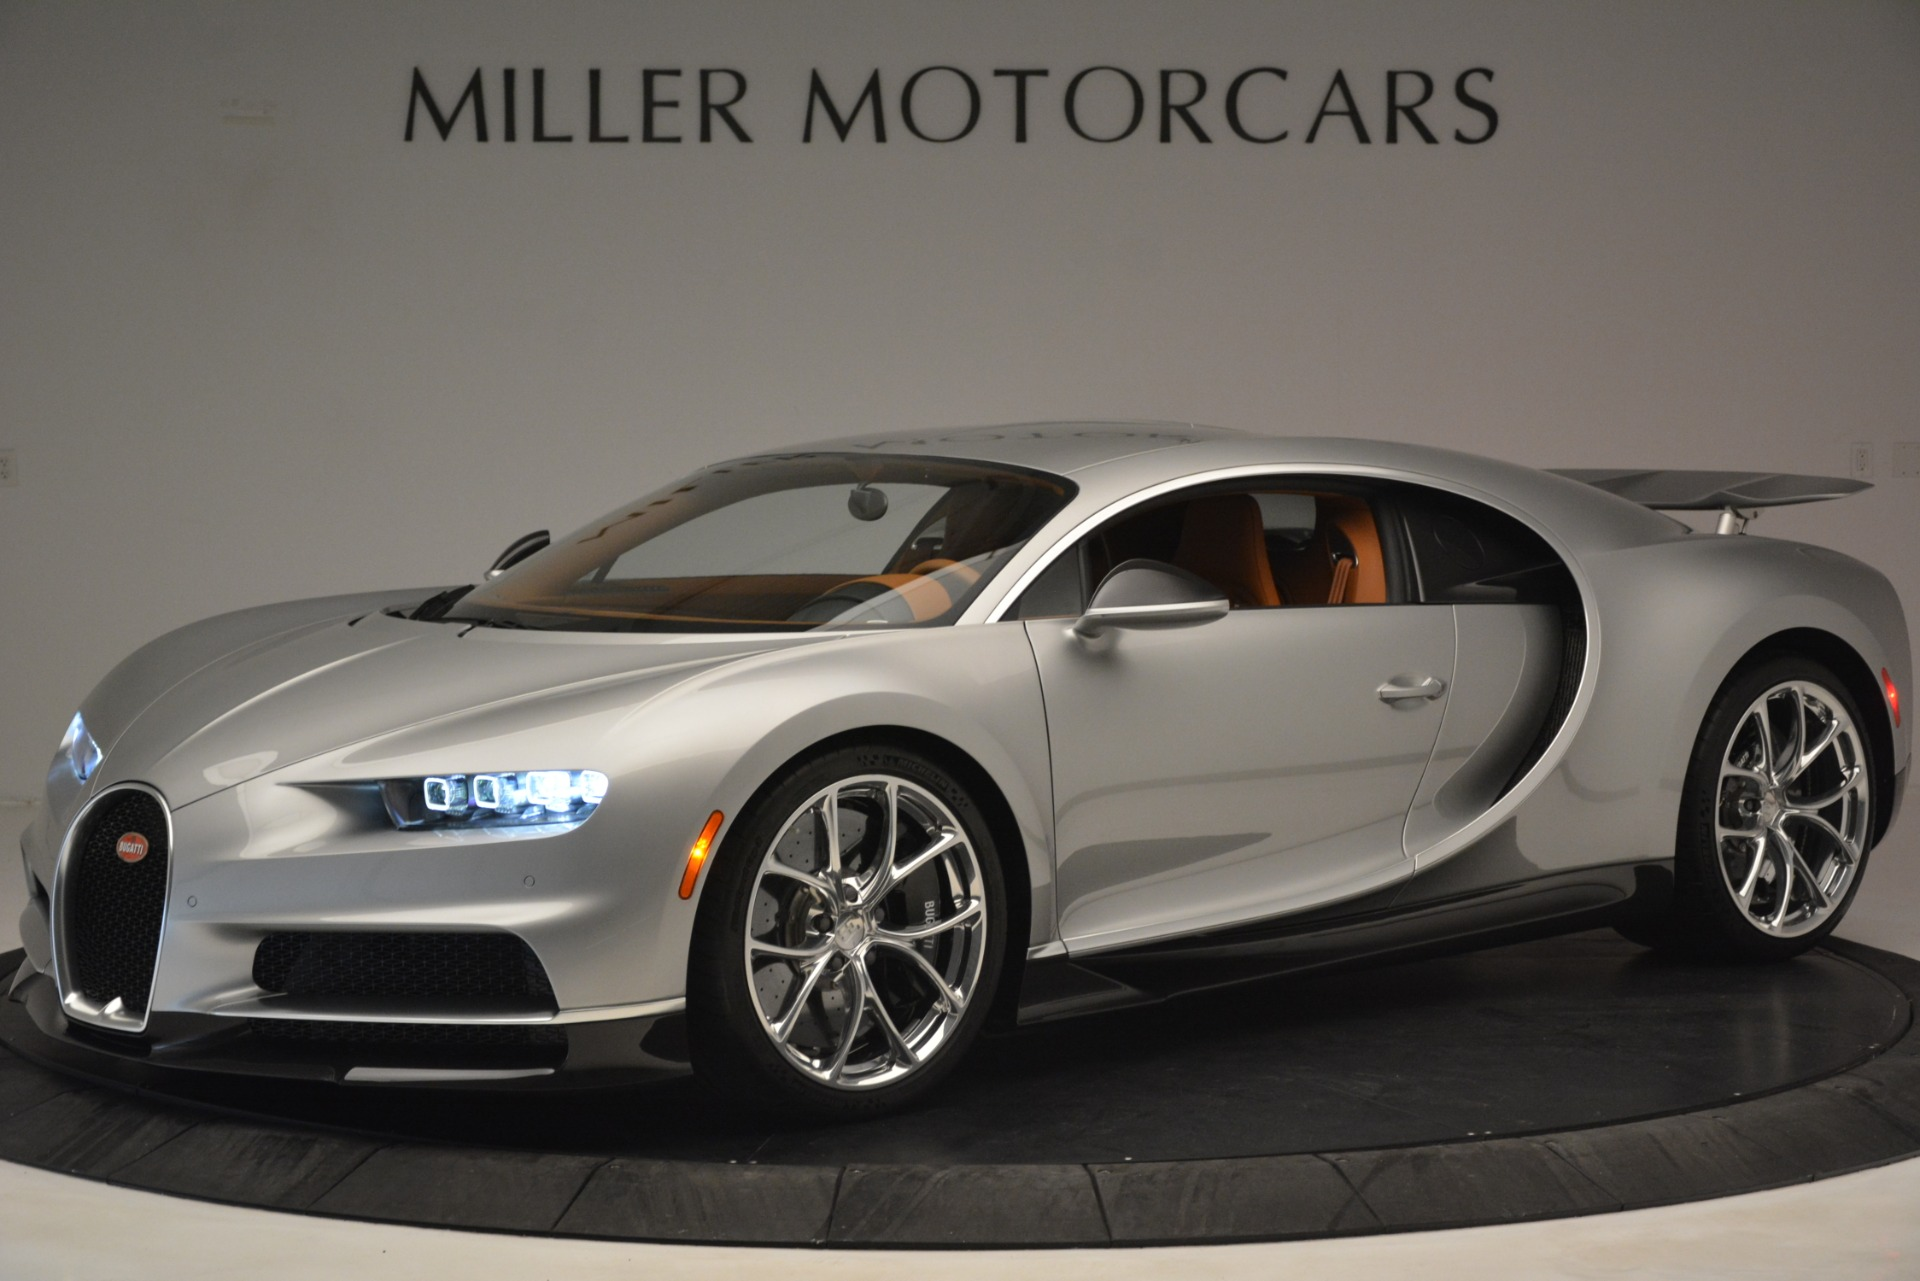 Used 2019 Bugatti Chiron for sale Sold at Maserati of Westport in Westport CT 06880 1